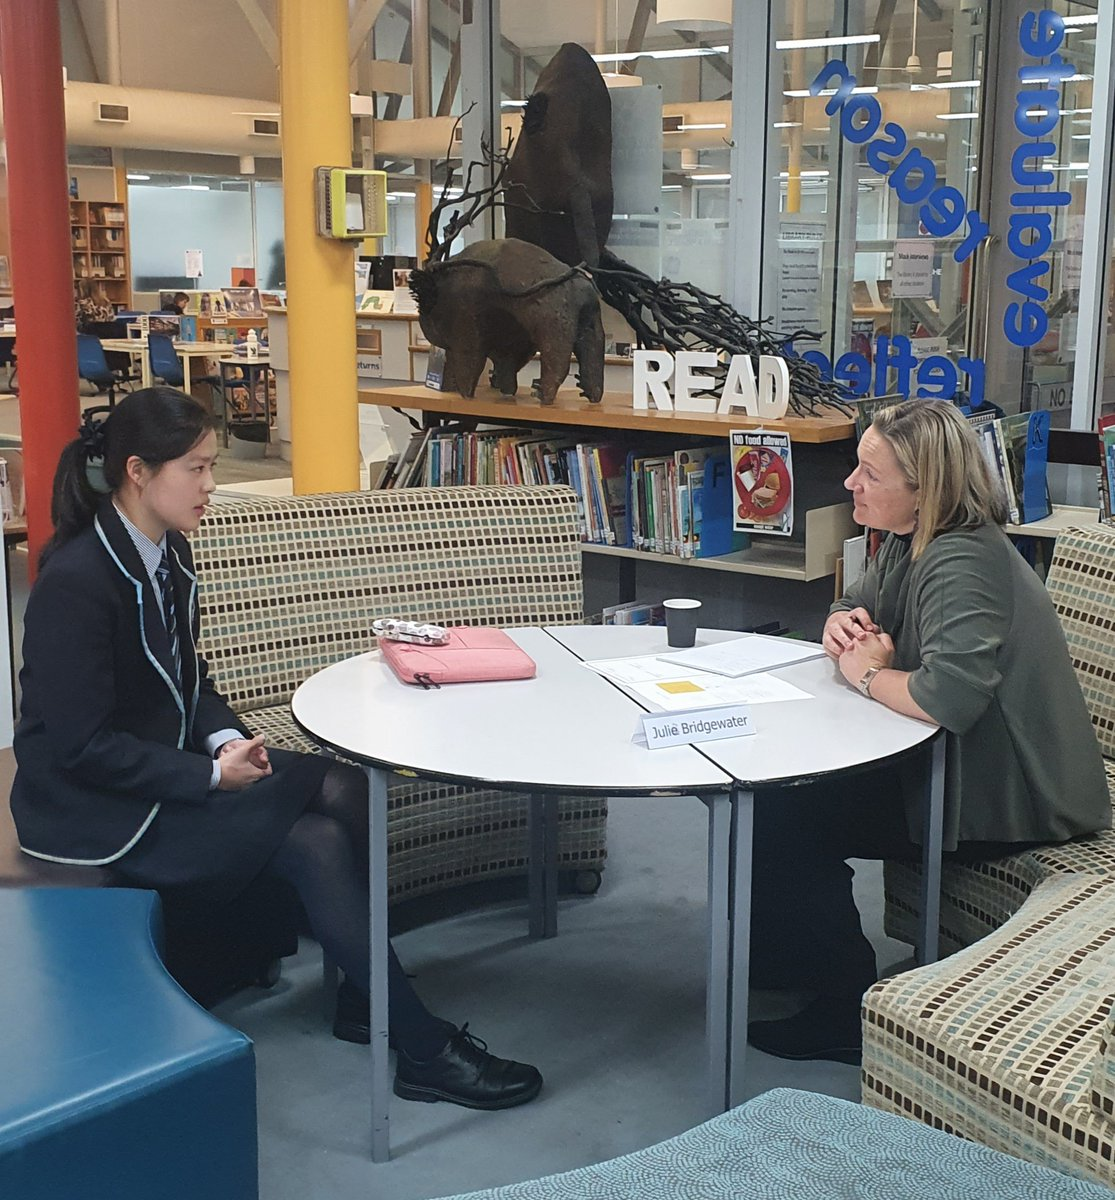 CGS Year 11 Students gain valuable experience in interview etiquette and technique through the mentoring experience with a real-world interviewer. Thank you to all the P&F and Alumni volunteers who made the 2021 Mock Interview event such a success.